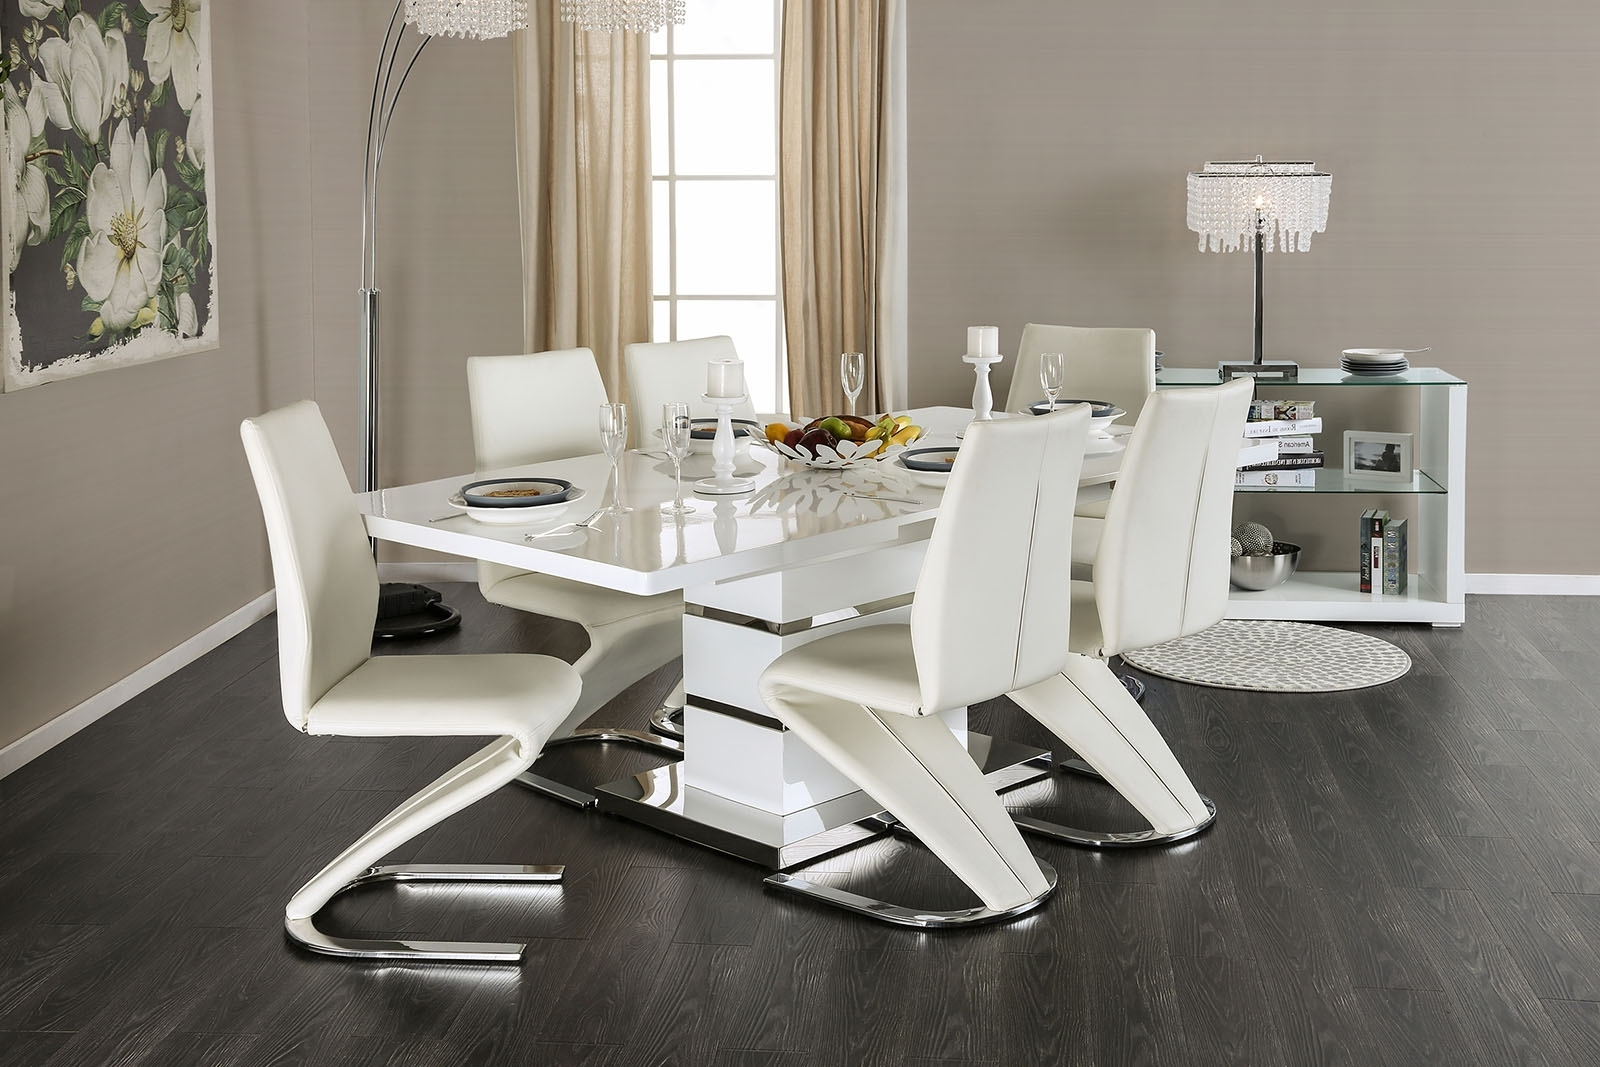 Recent Midvale Contemporary Style White High Gloss Lacquer Finish & Chrome Intended For Chrome Dining Sets (View 6 of 25)